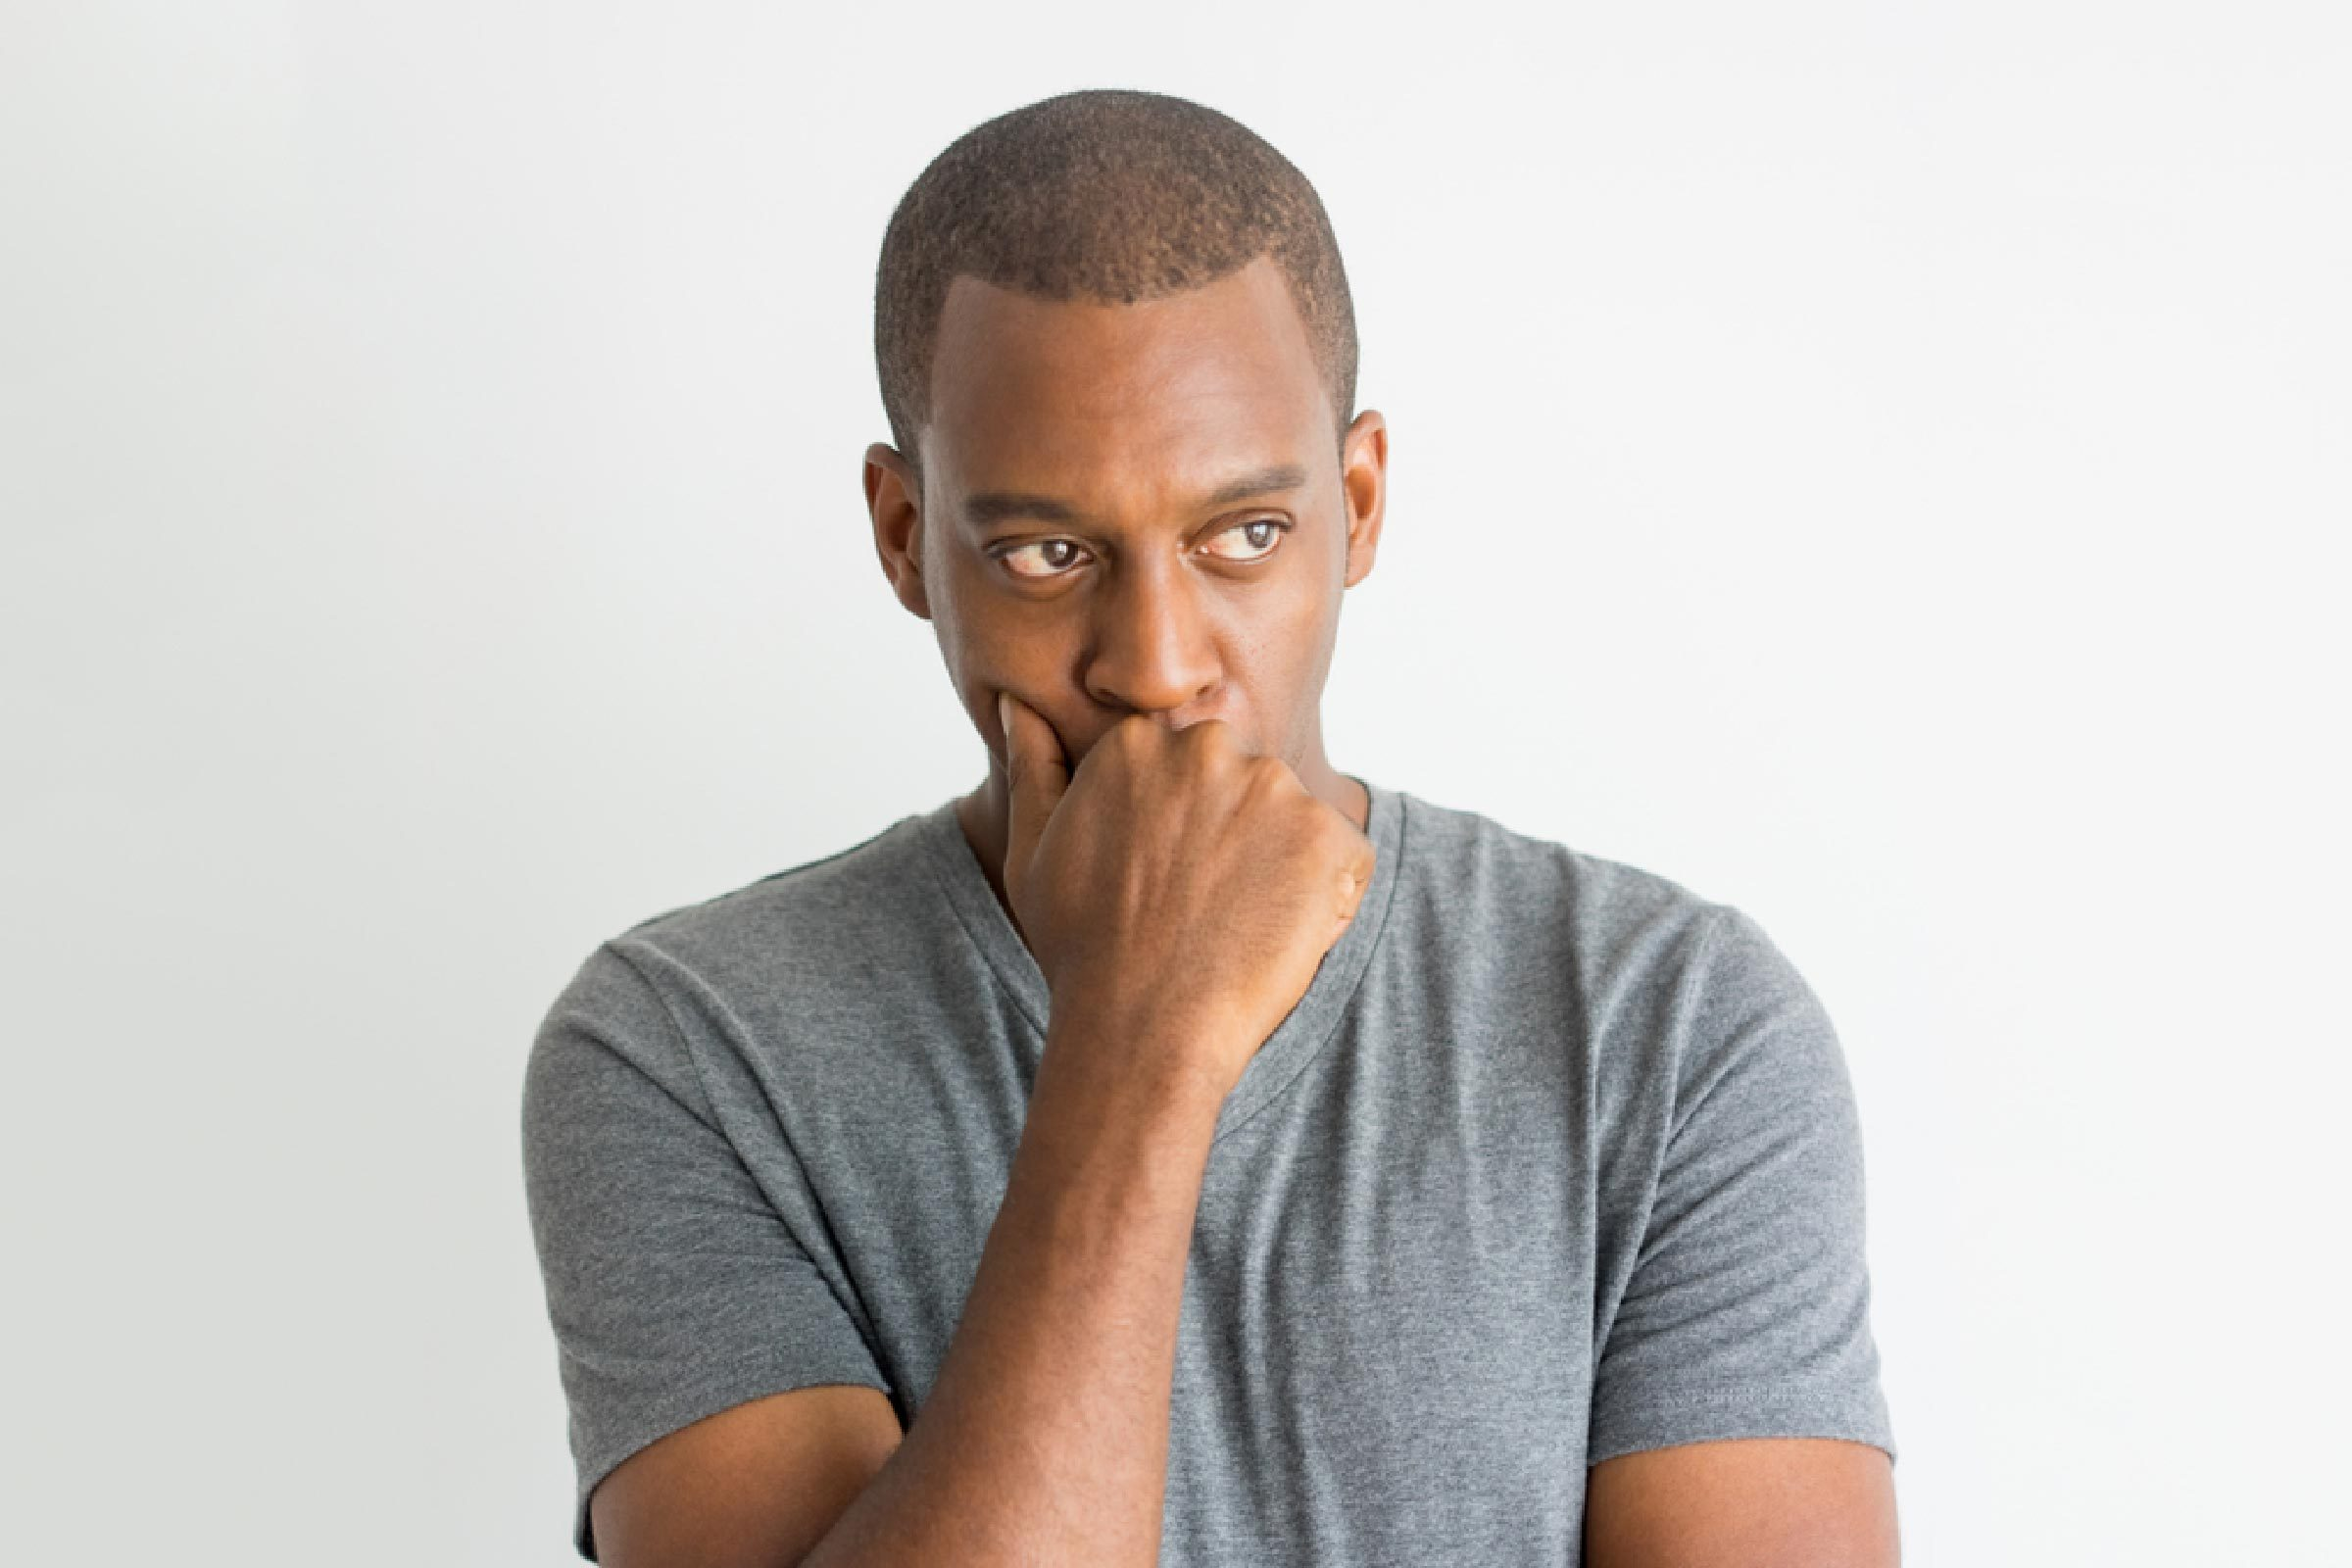 6b406ccb 13 Common Words and Phrases That May Signal Depression | Reader's Digest